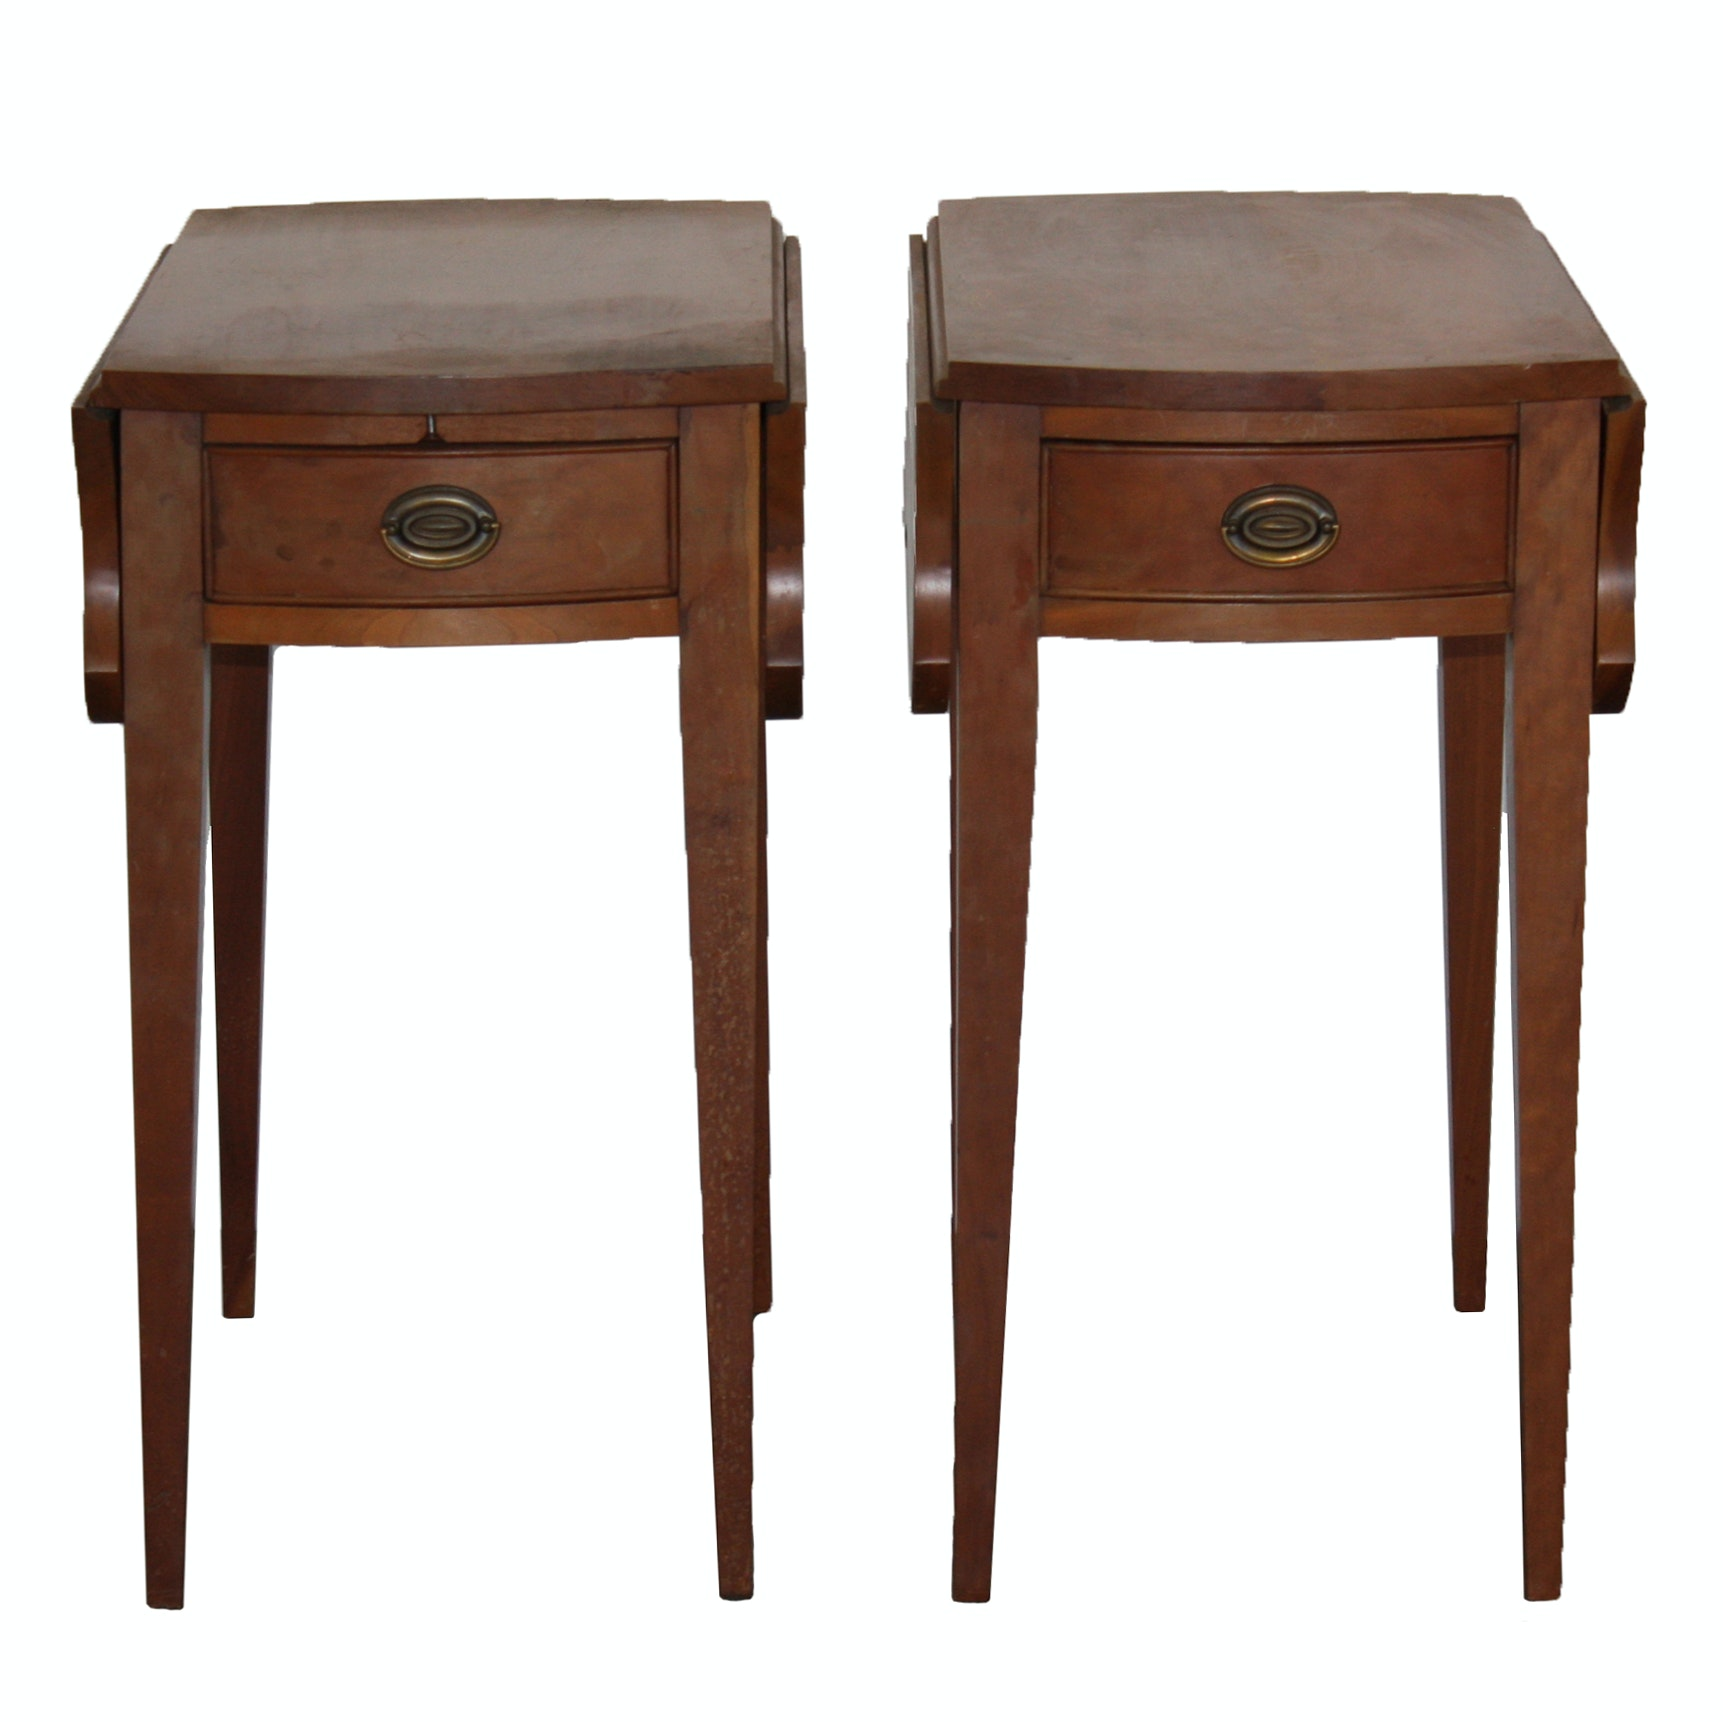 Pair of Penbroke Cherry Drop Leaf End Tables